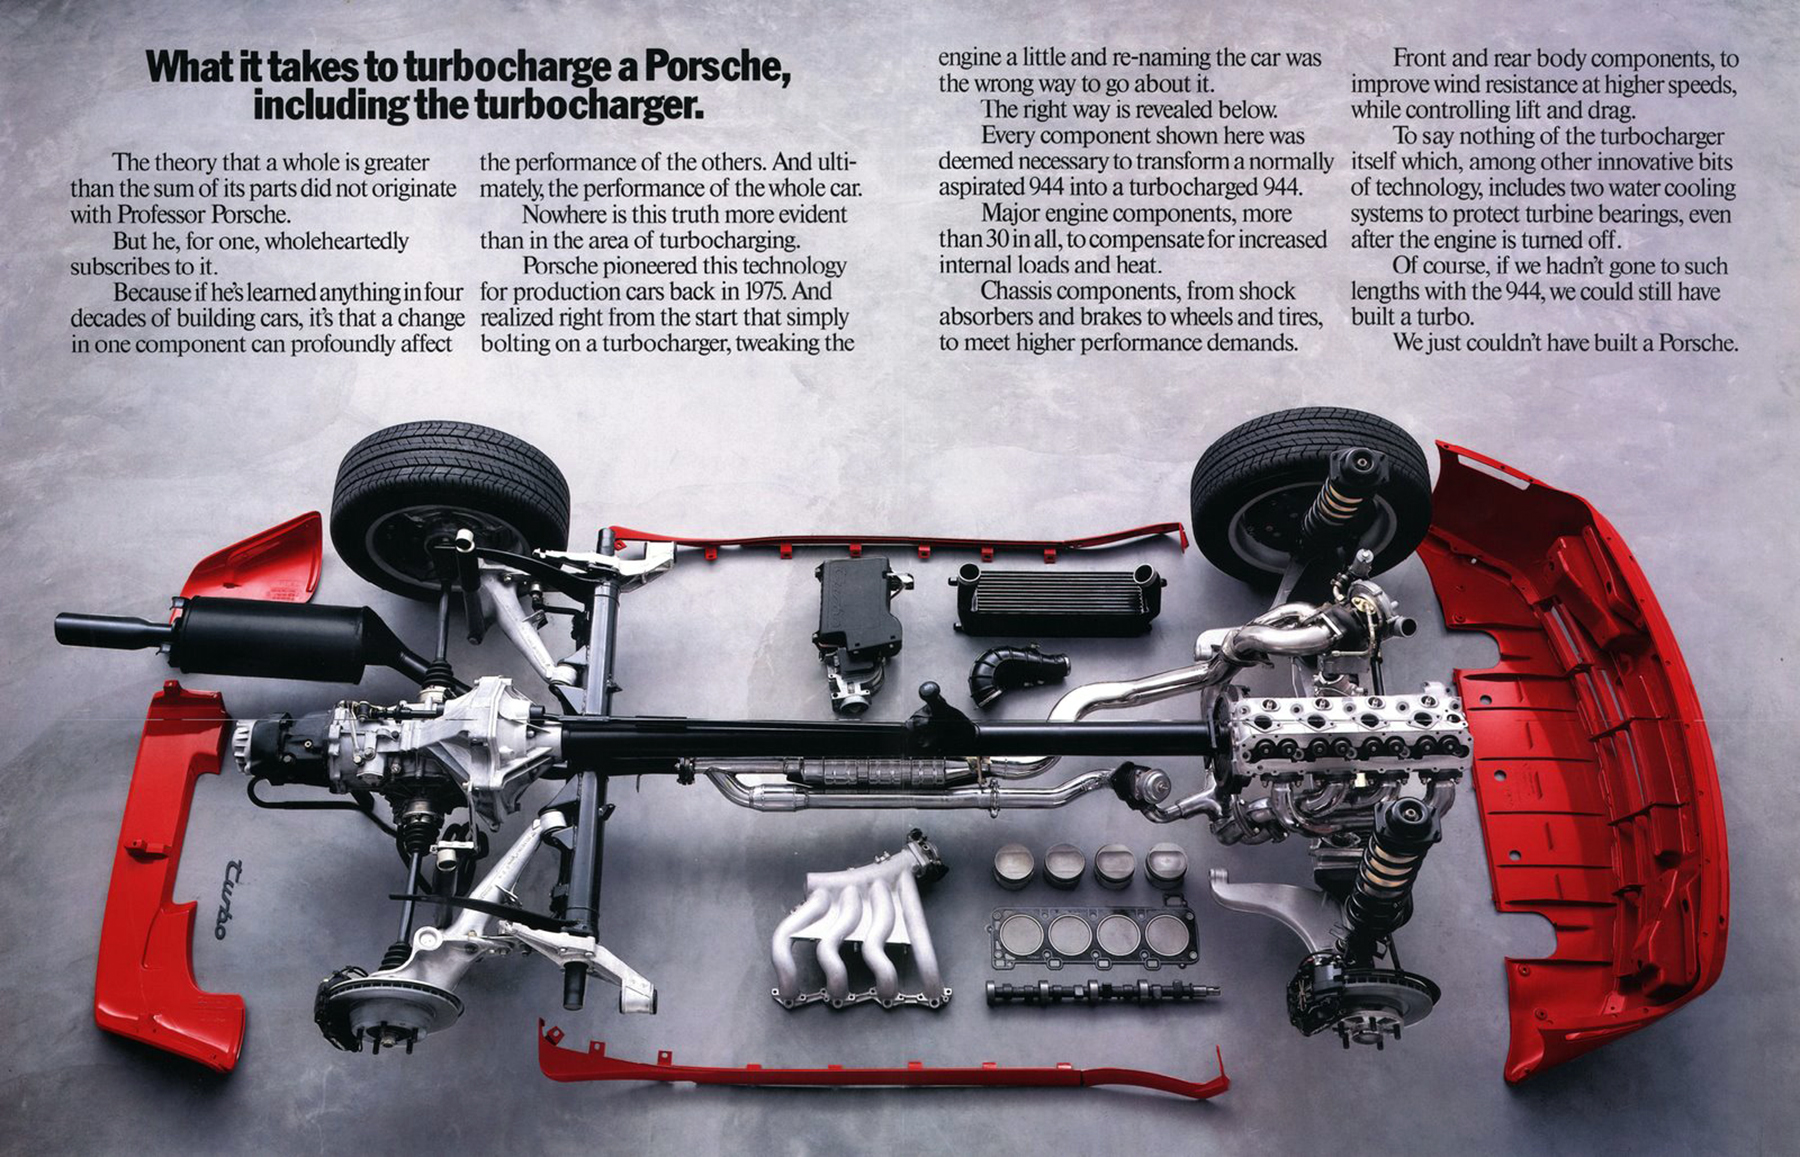 1986 Porsche 944 Turbo Ad, parts